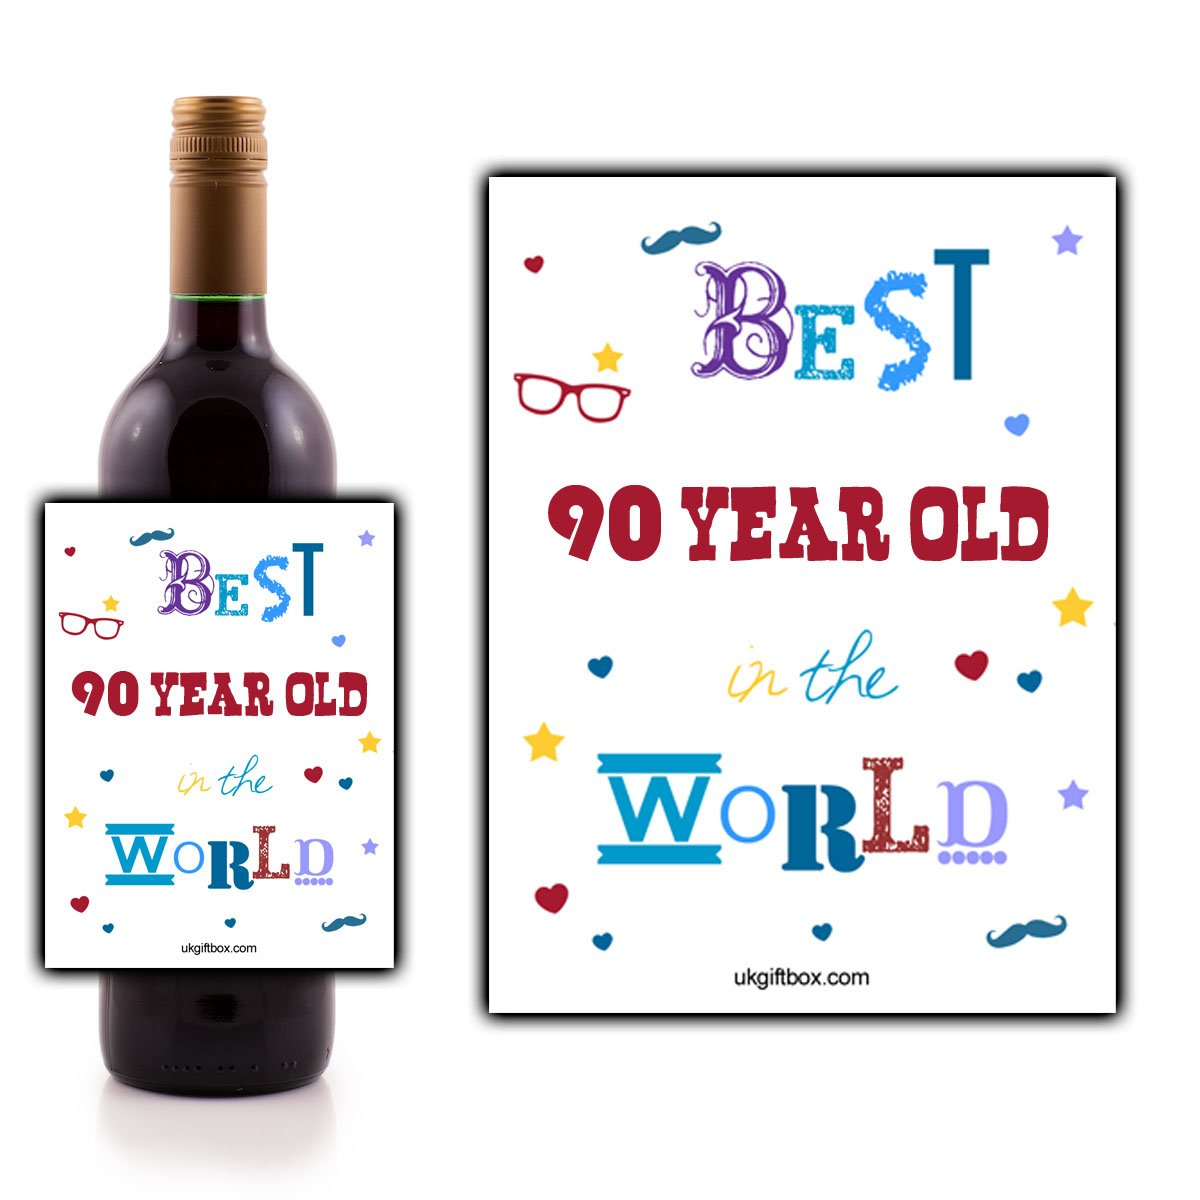 """""""Best 90 year old in the World"""" Wine Bottle Lable - perfect for adding that special touch to someone's favourite bottle! ukgiftbox"""